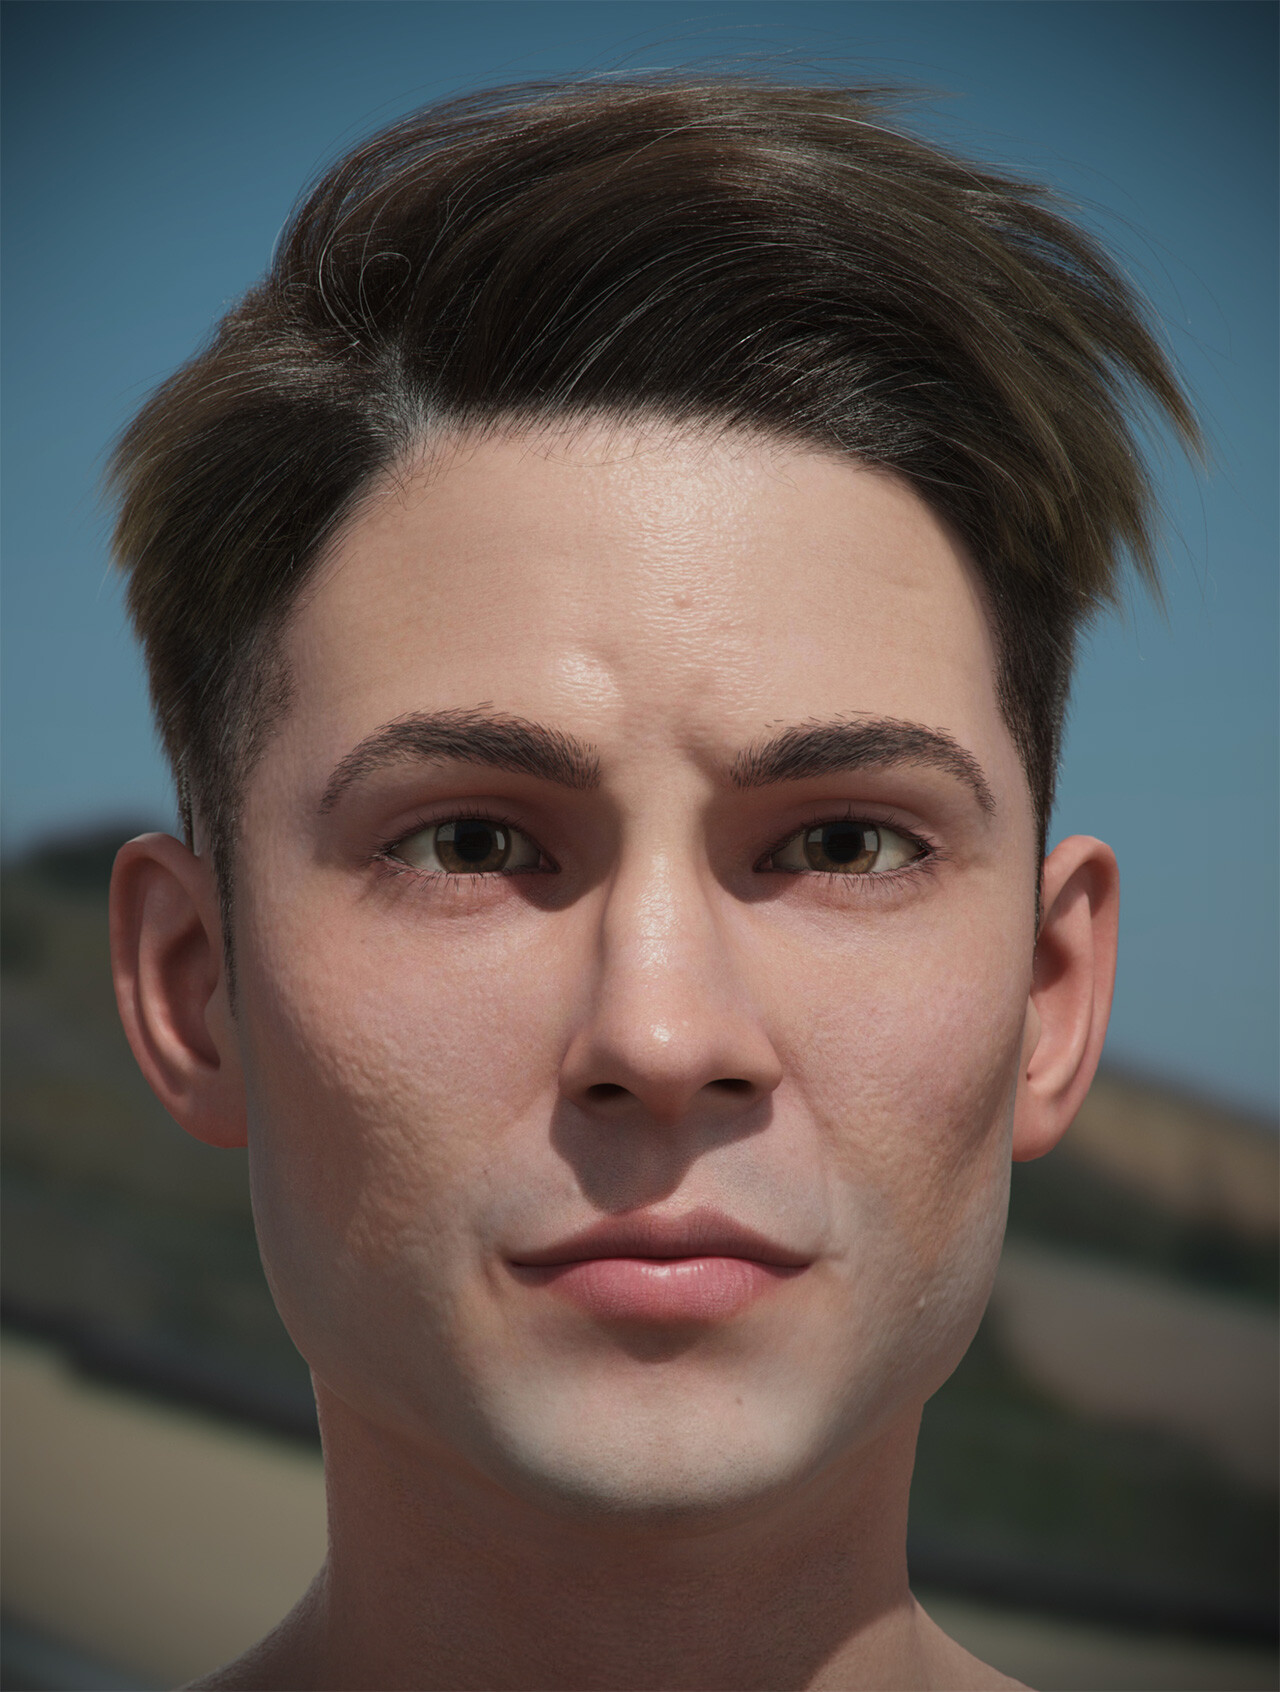 Andrew krivulya genry haircut 1 by akcharly cam00